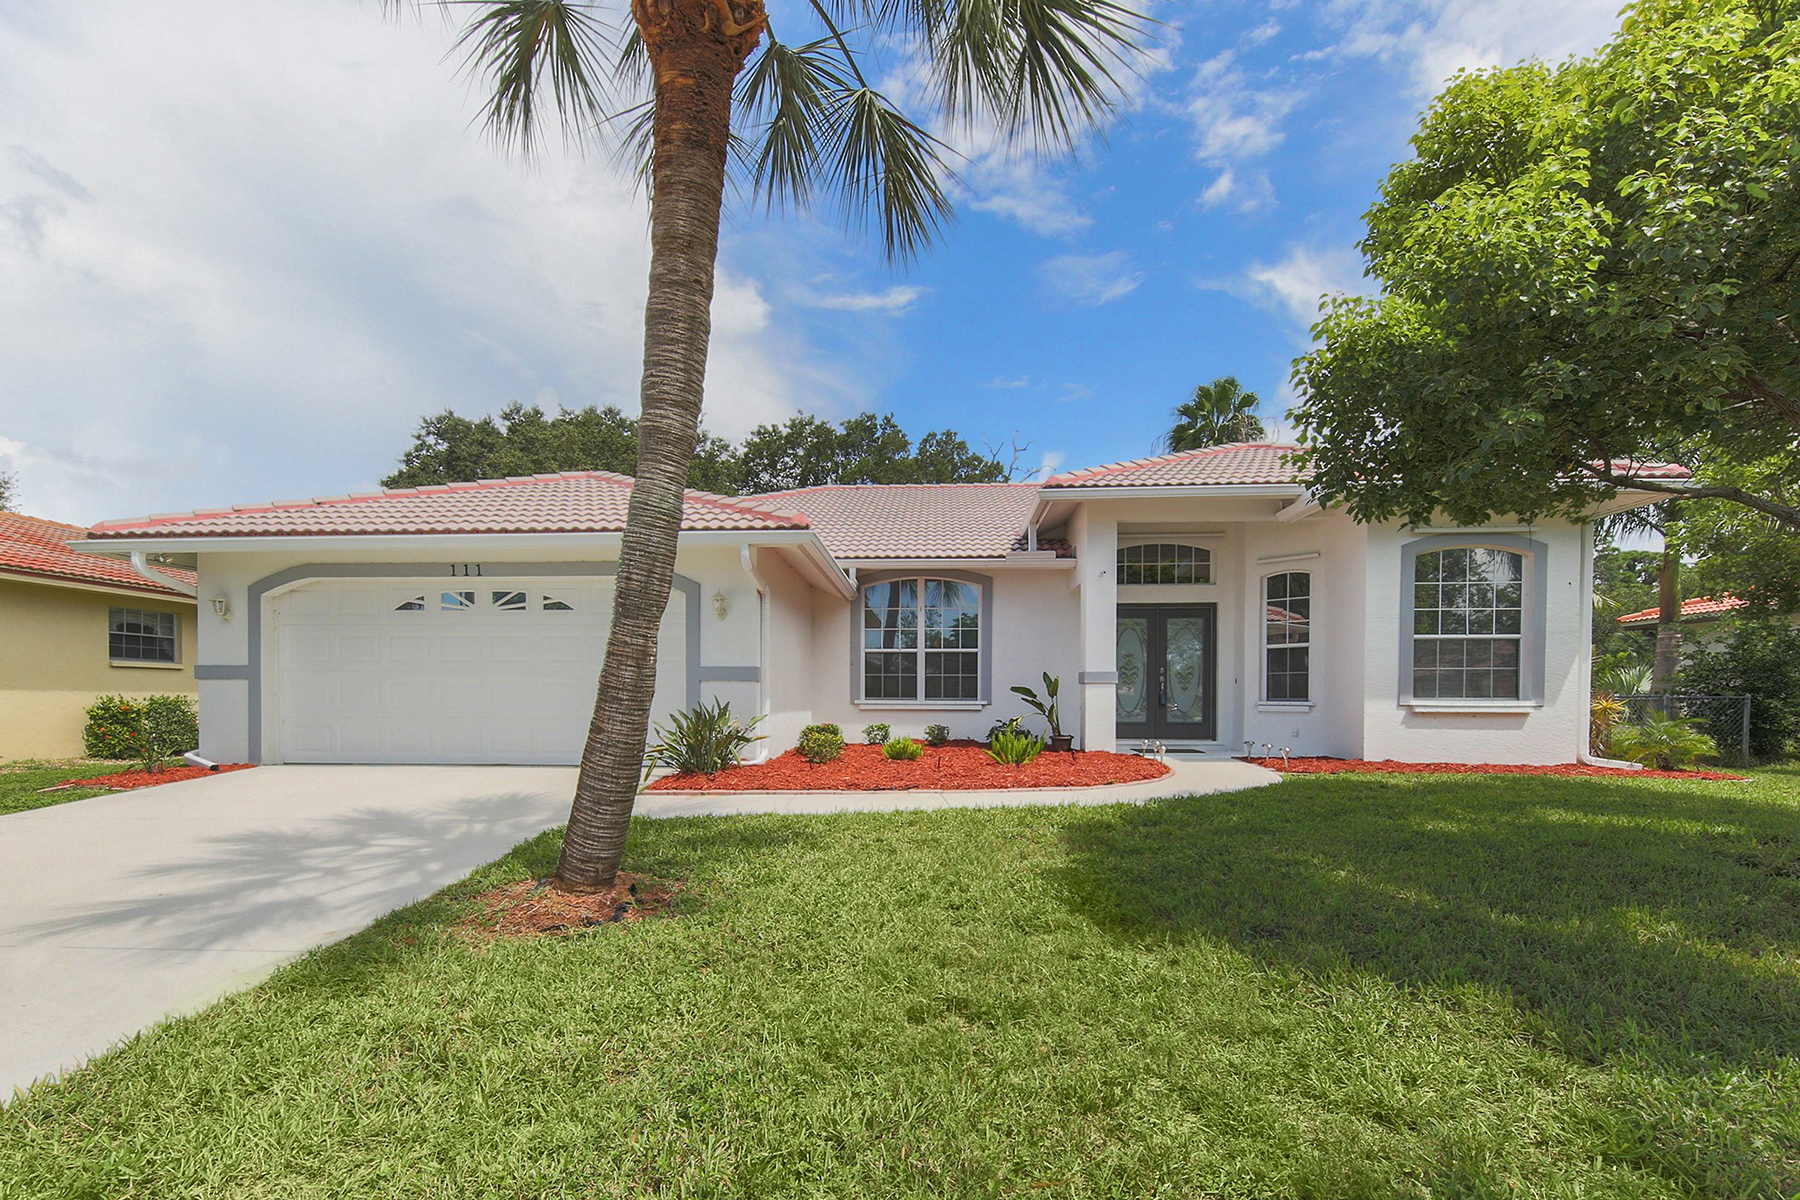 Single Family Home for Sale at SORRENTO EAST 111 Da Vinci Dr Nokomis, Florida, 34275 United States